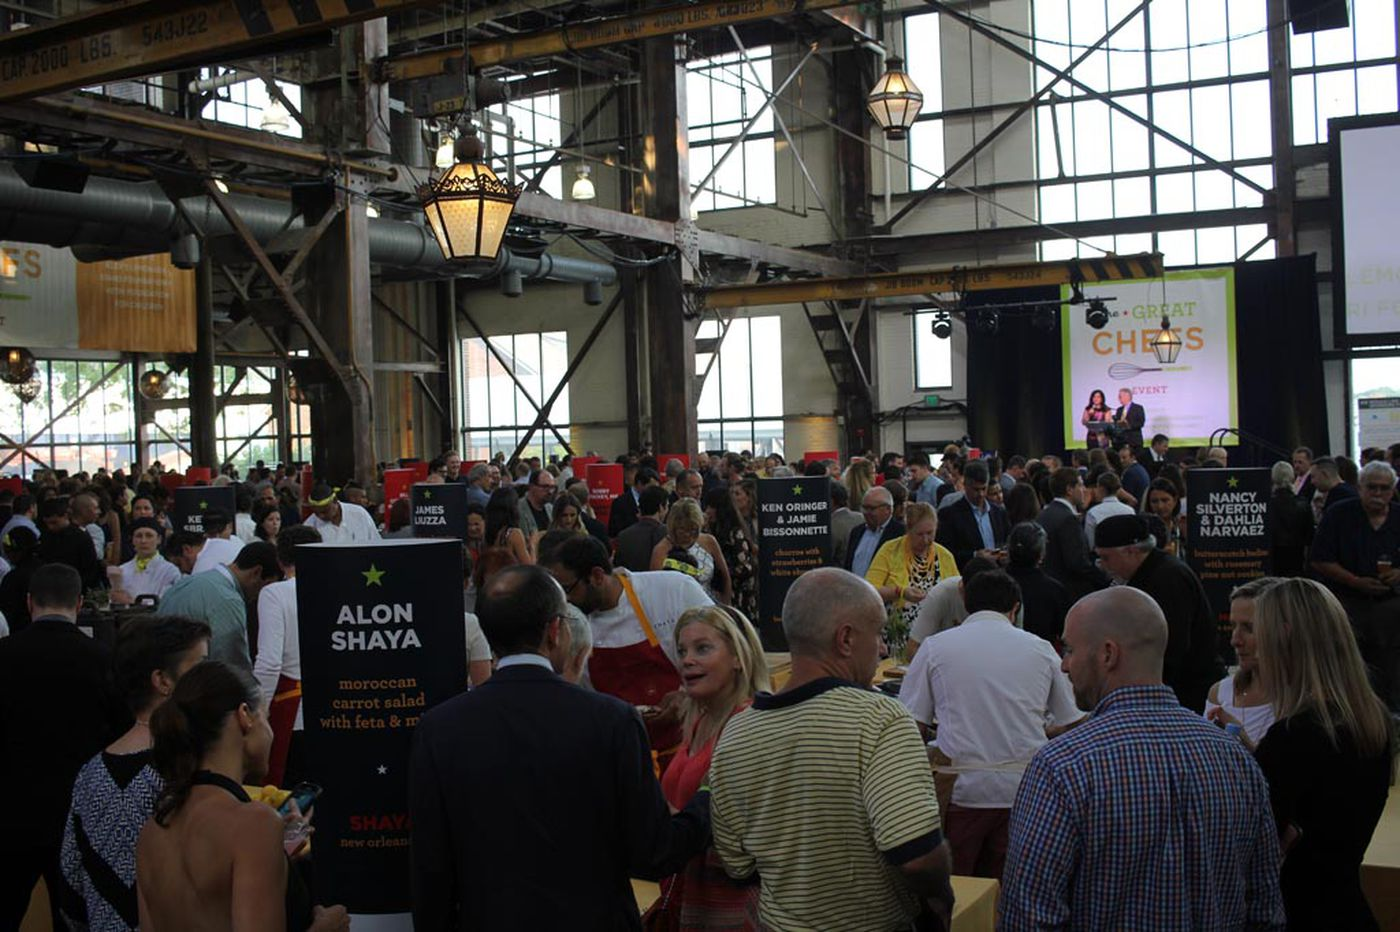 Great Chefs Event to assemble 40 chefs, foie gras cotton candy, and family fun